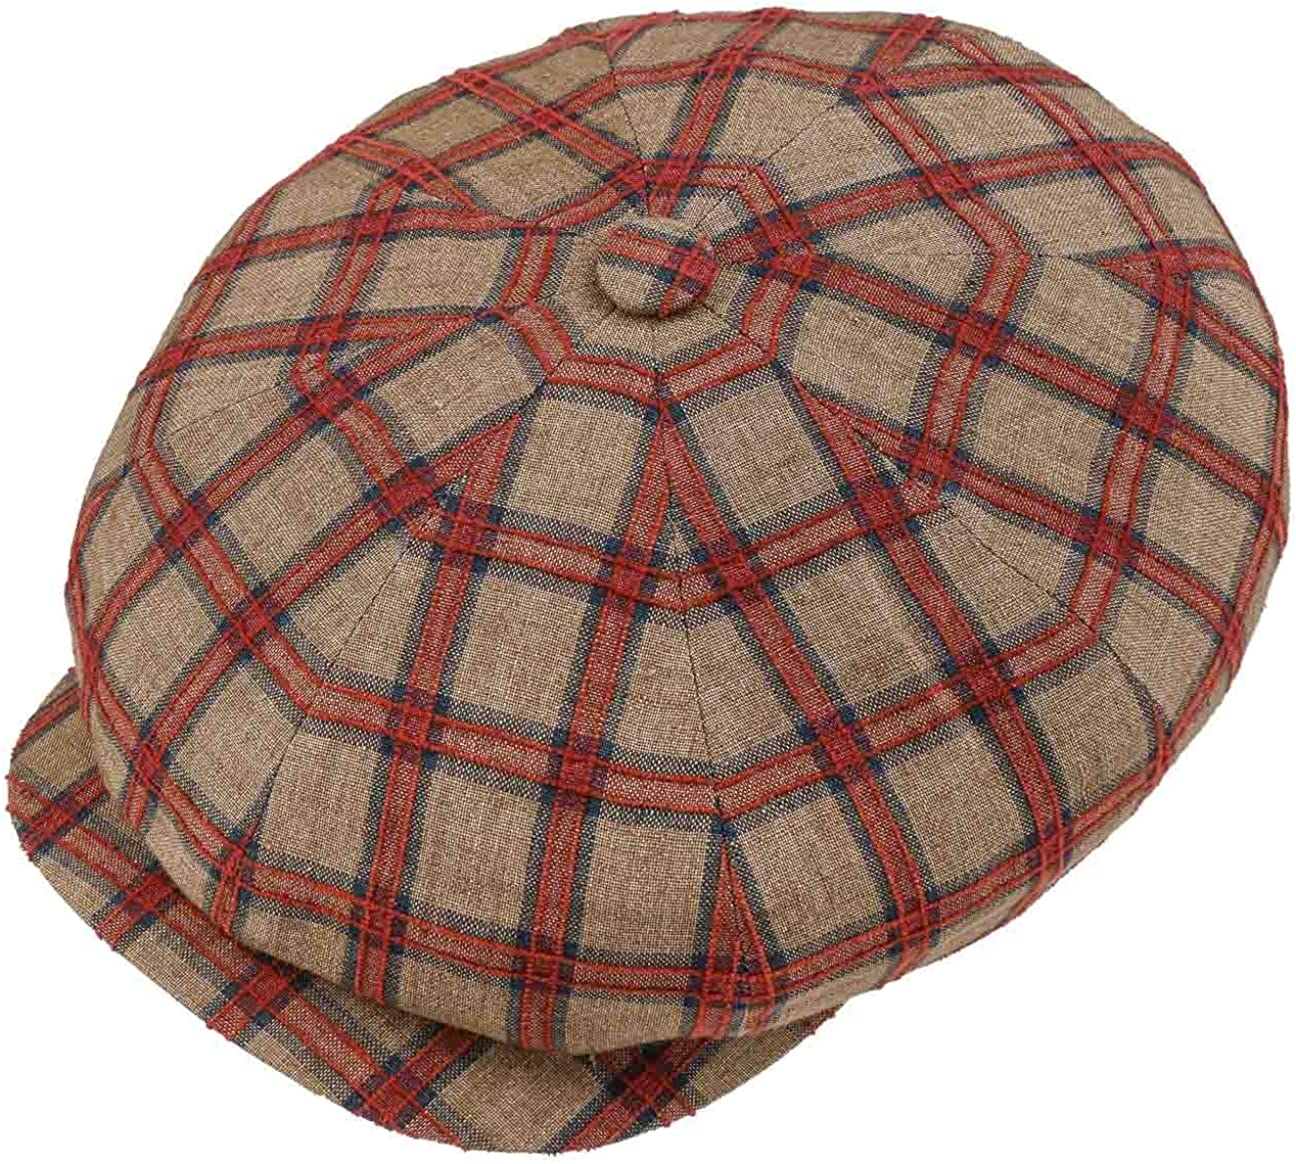 1920s Men's Hats – 8 Popular Styles Stetson Hatteras Large Checks Flat Cap Men - Made in The EU $92.37 AT vintagedancer.com